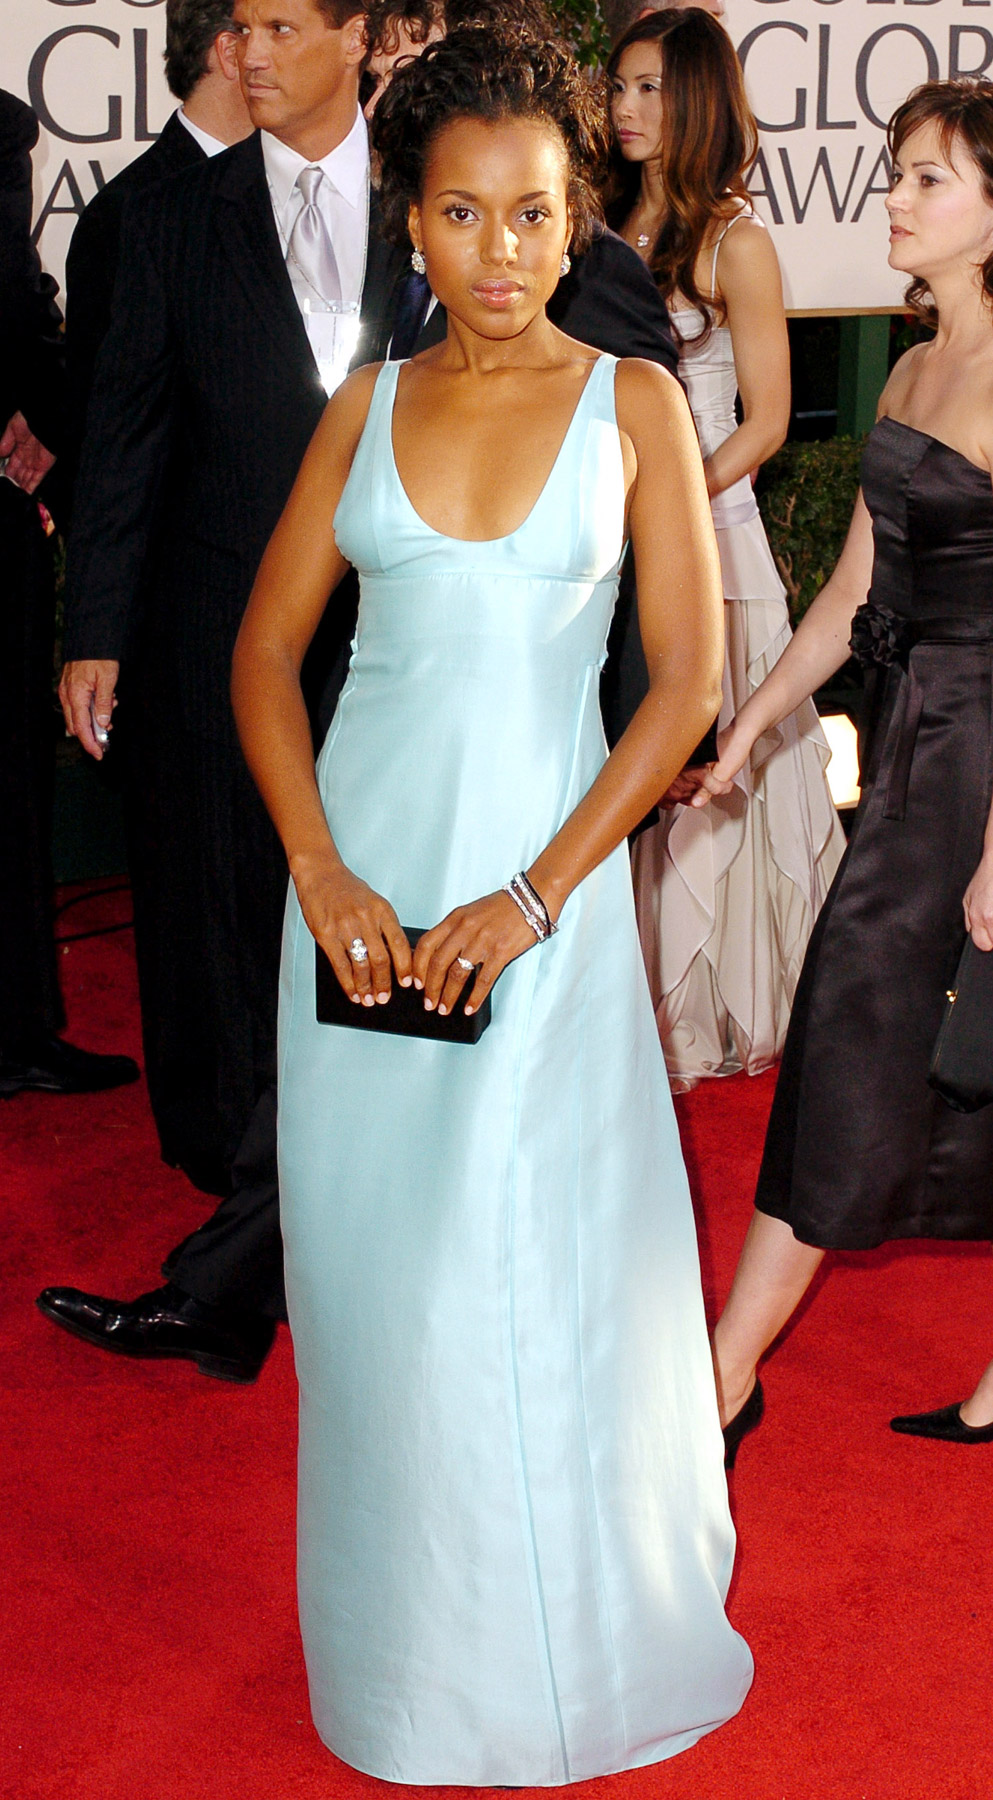 The Ray actress was regal in an ice-blue Narciso Rodriguez gown at the 2005 Golden Globes, where she cheered on co-star and Best Actor winner Jamie Foxx .